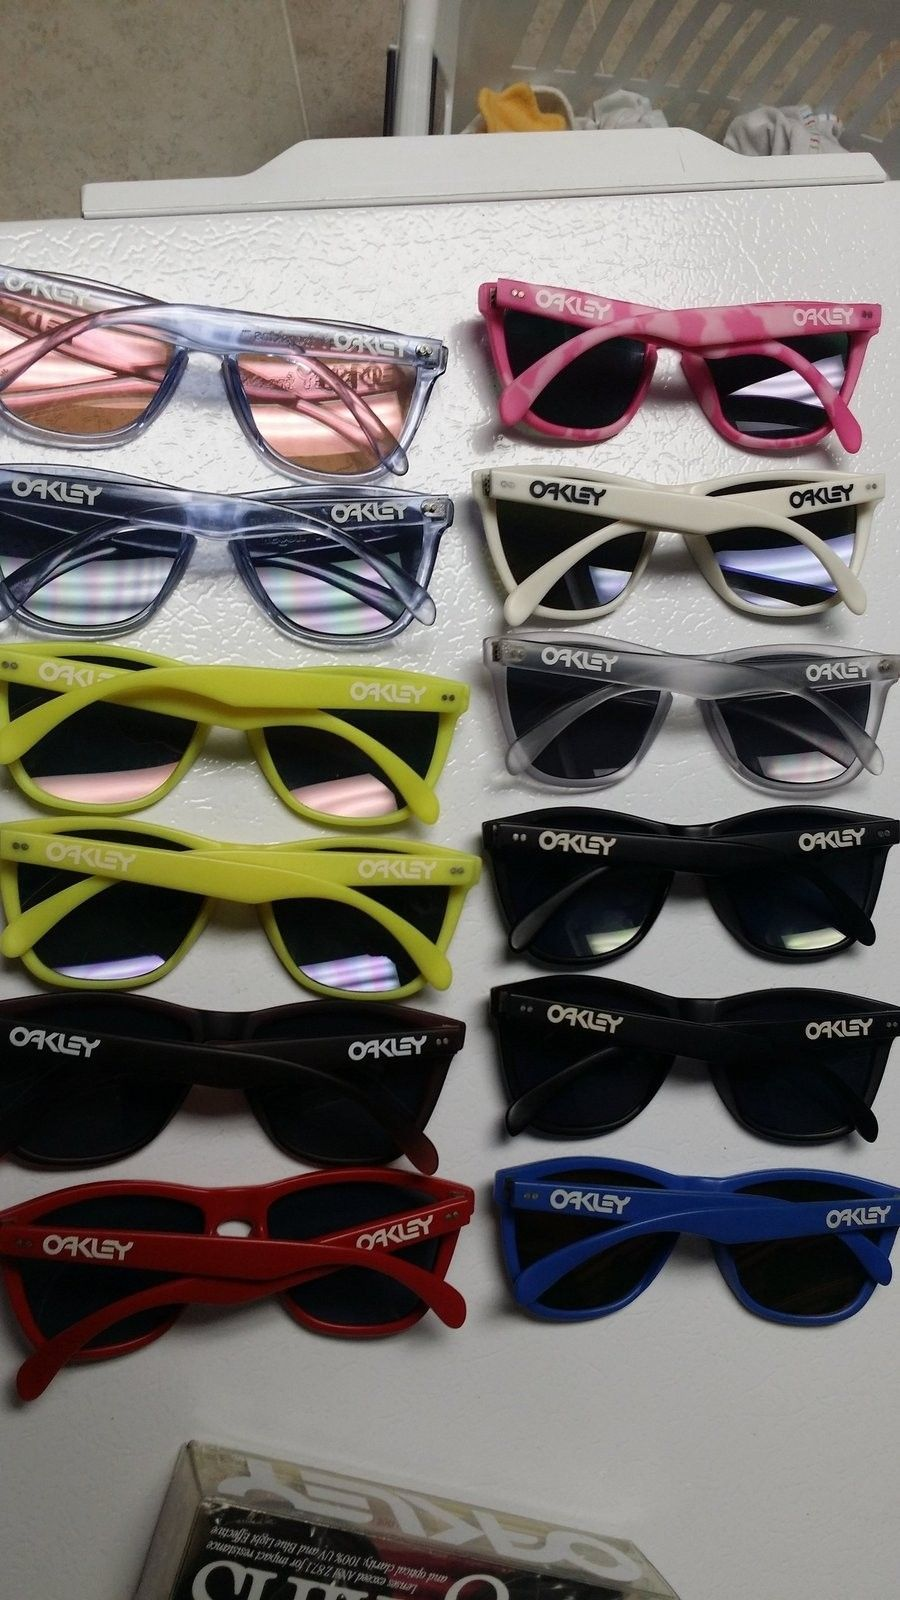 Differences in sizing between 1st generation frogskins. - 14384260872361190167321.jpg